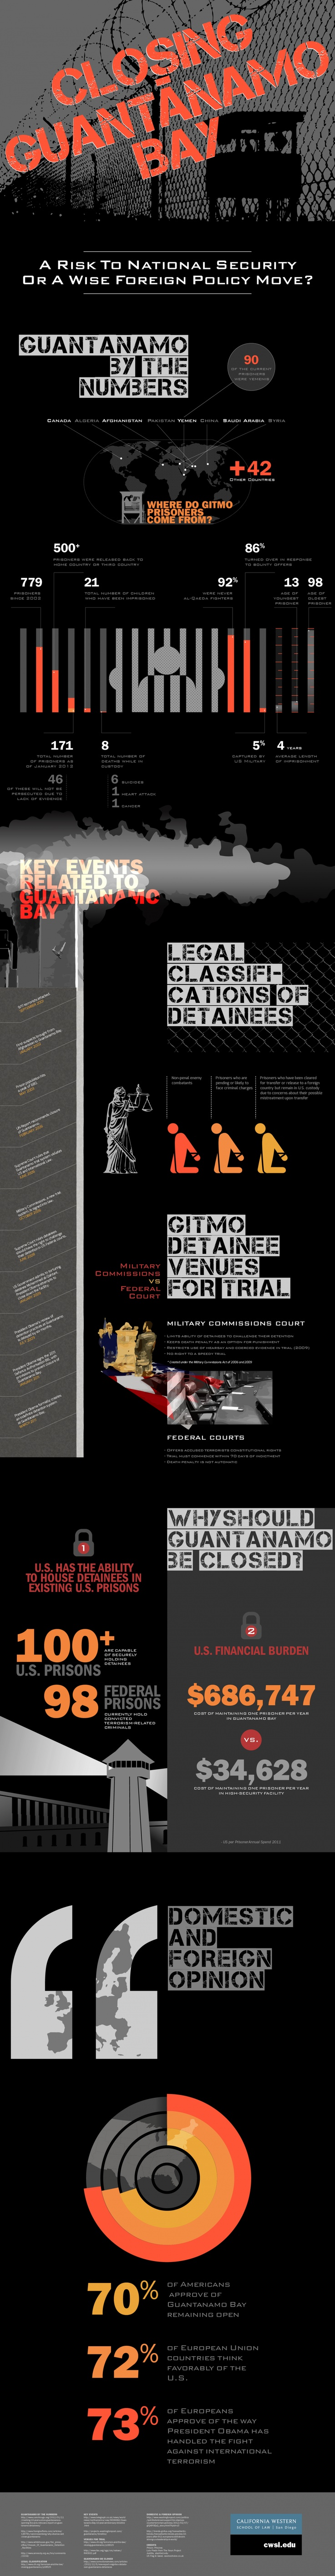 best guantanamo bay images culture and  closing guantanamo bay as of 2013 166 detainees remain